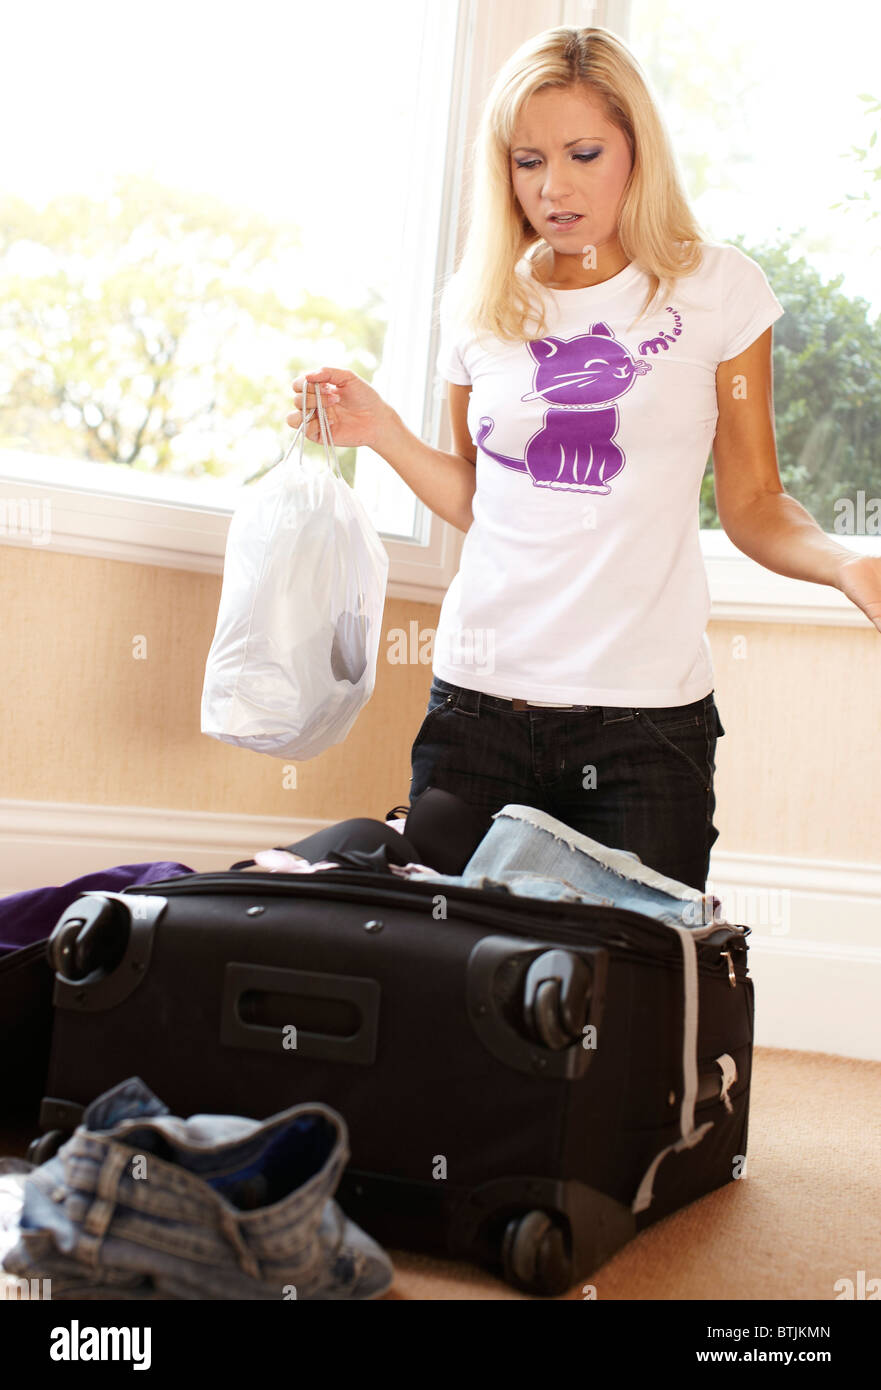 Girl packing suitcase - Stock Image